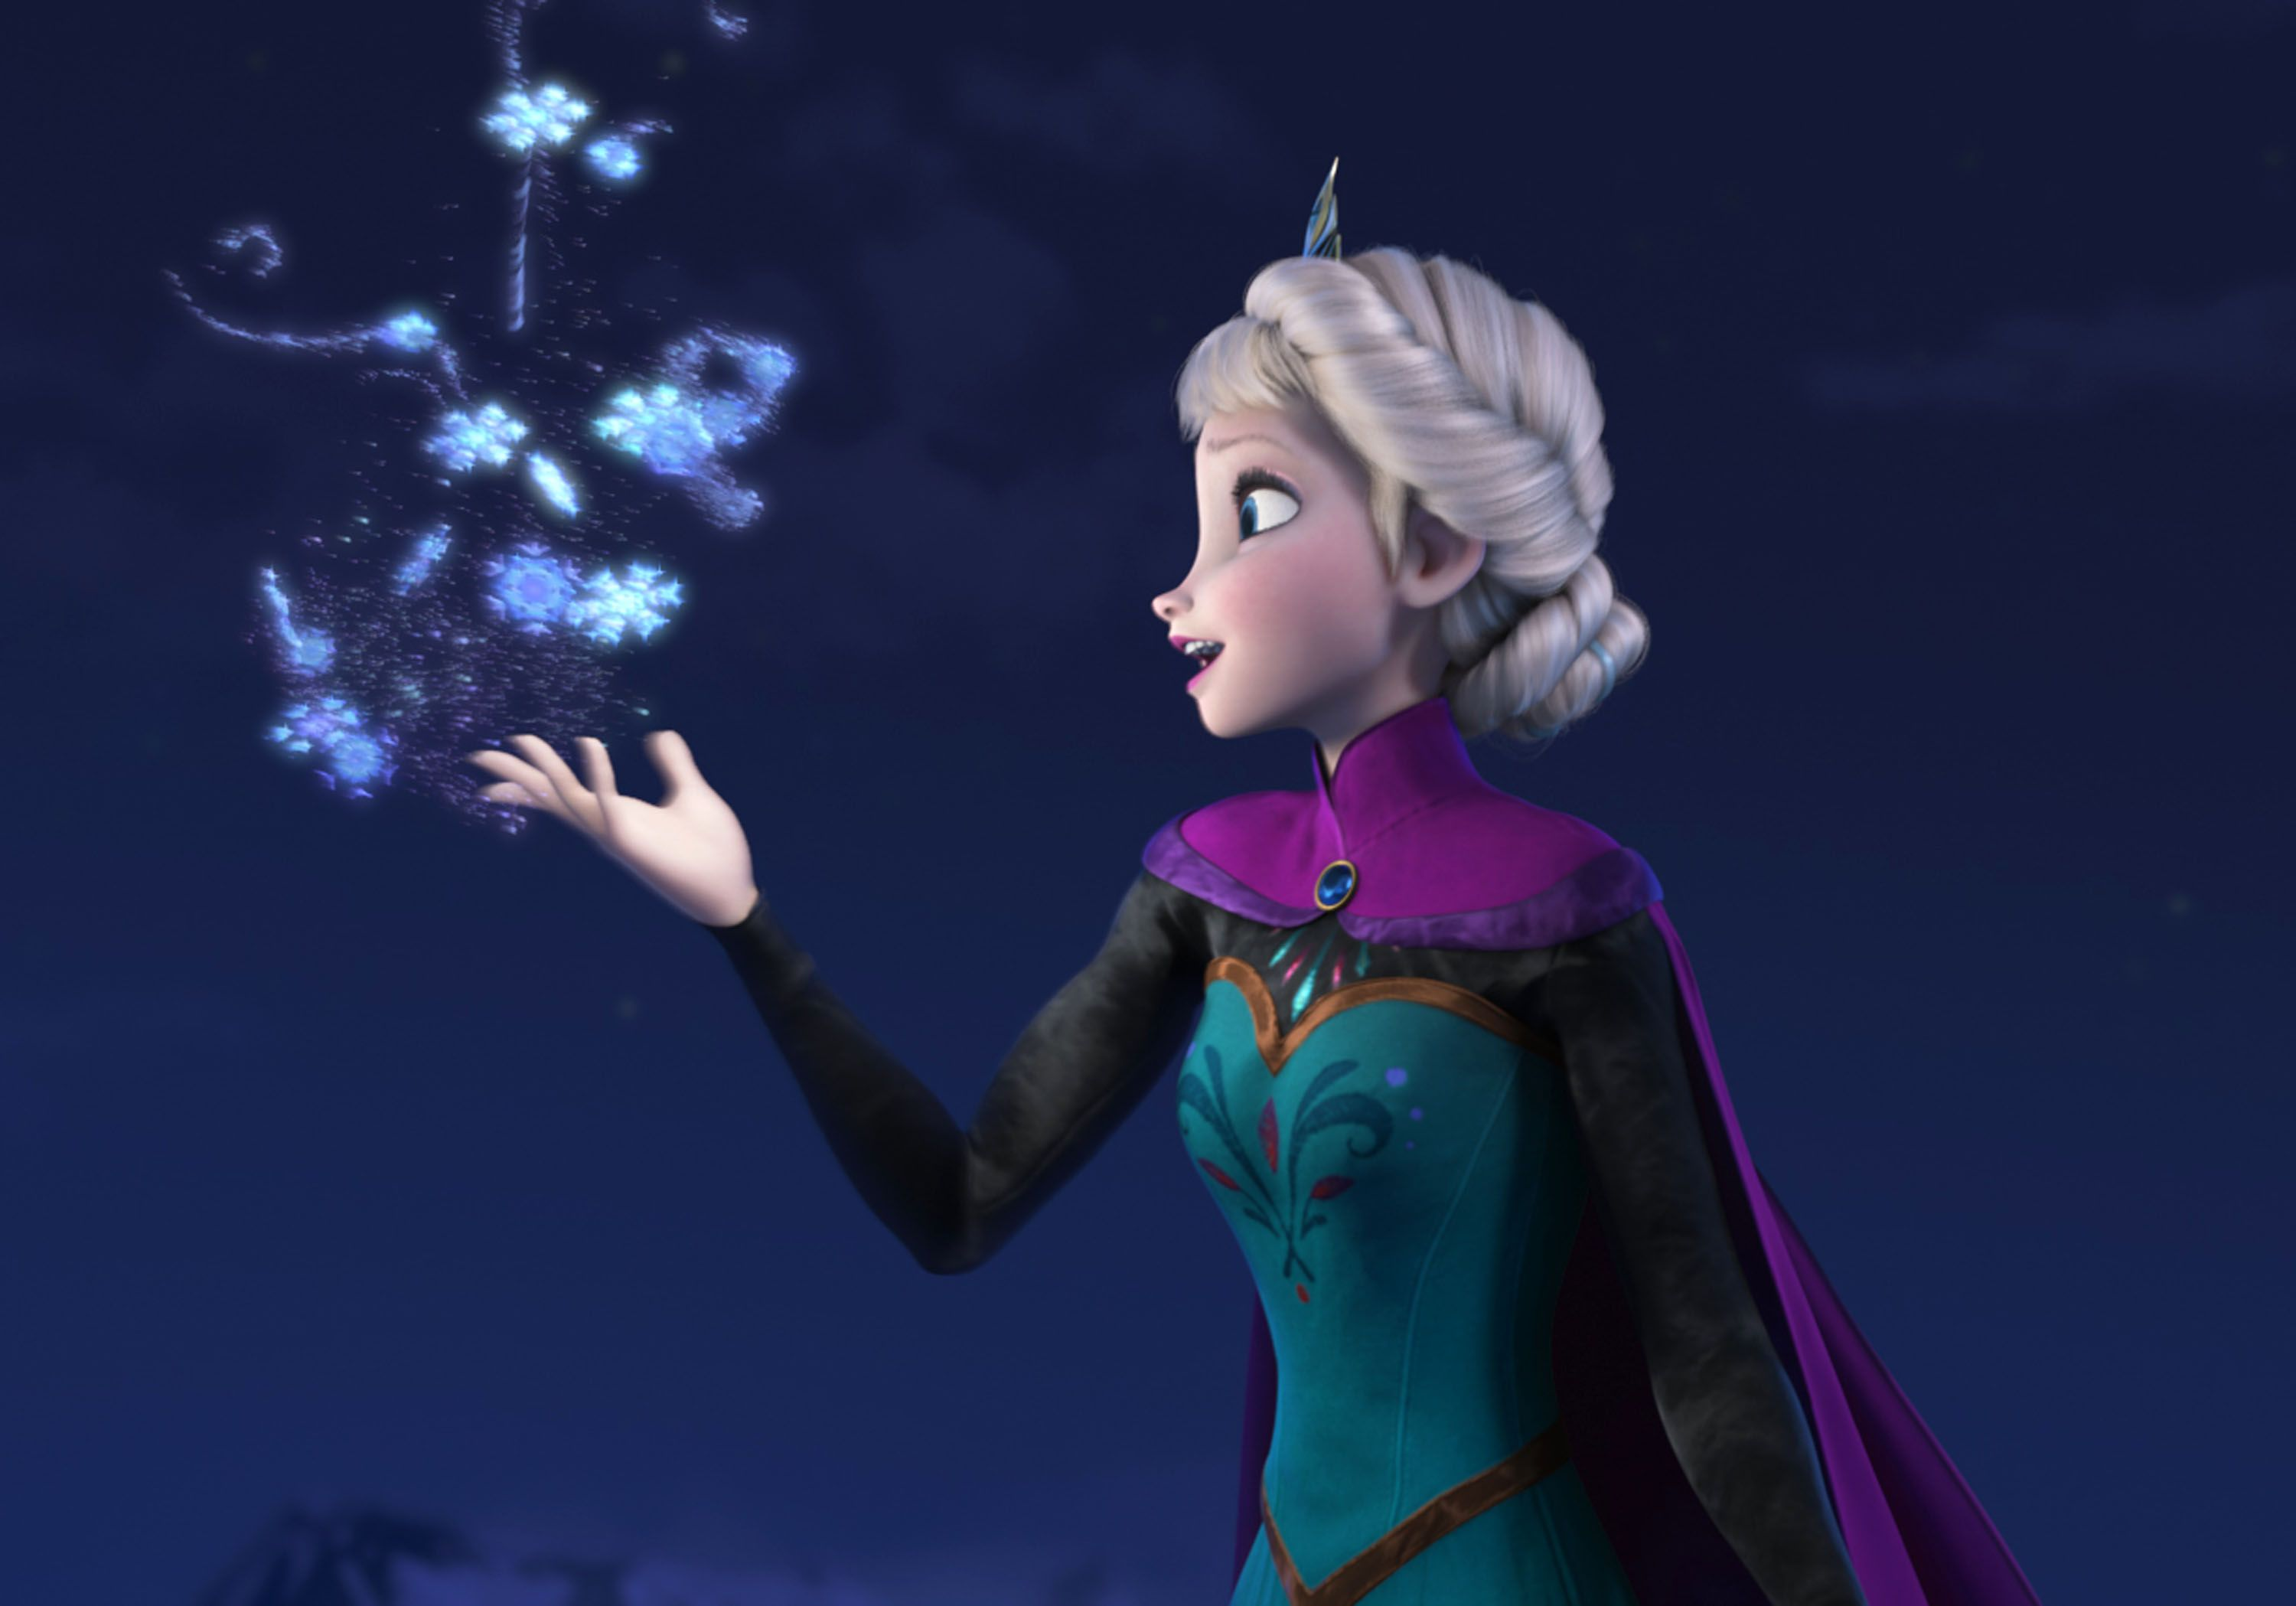 frozen 2 - photo #29